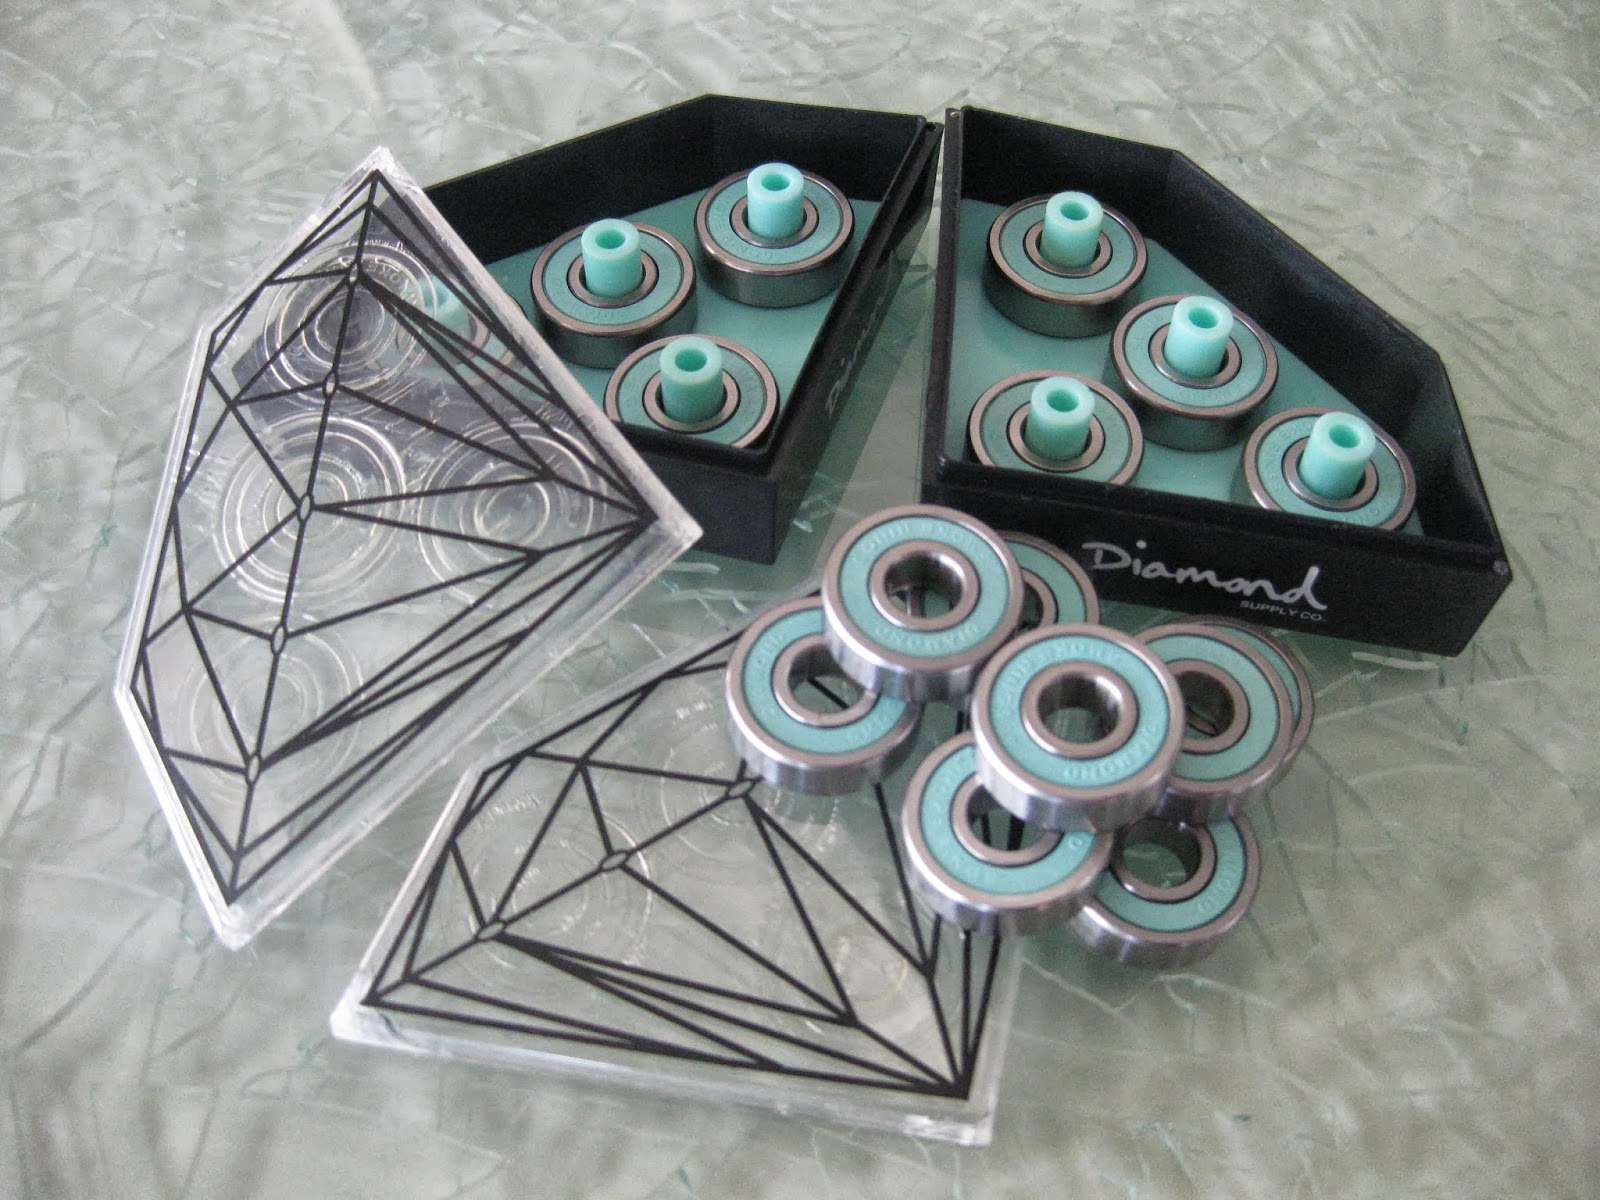 DIAMOND SMOKE RINGS At ALJEK $35